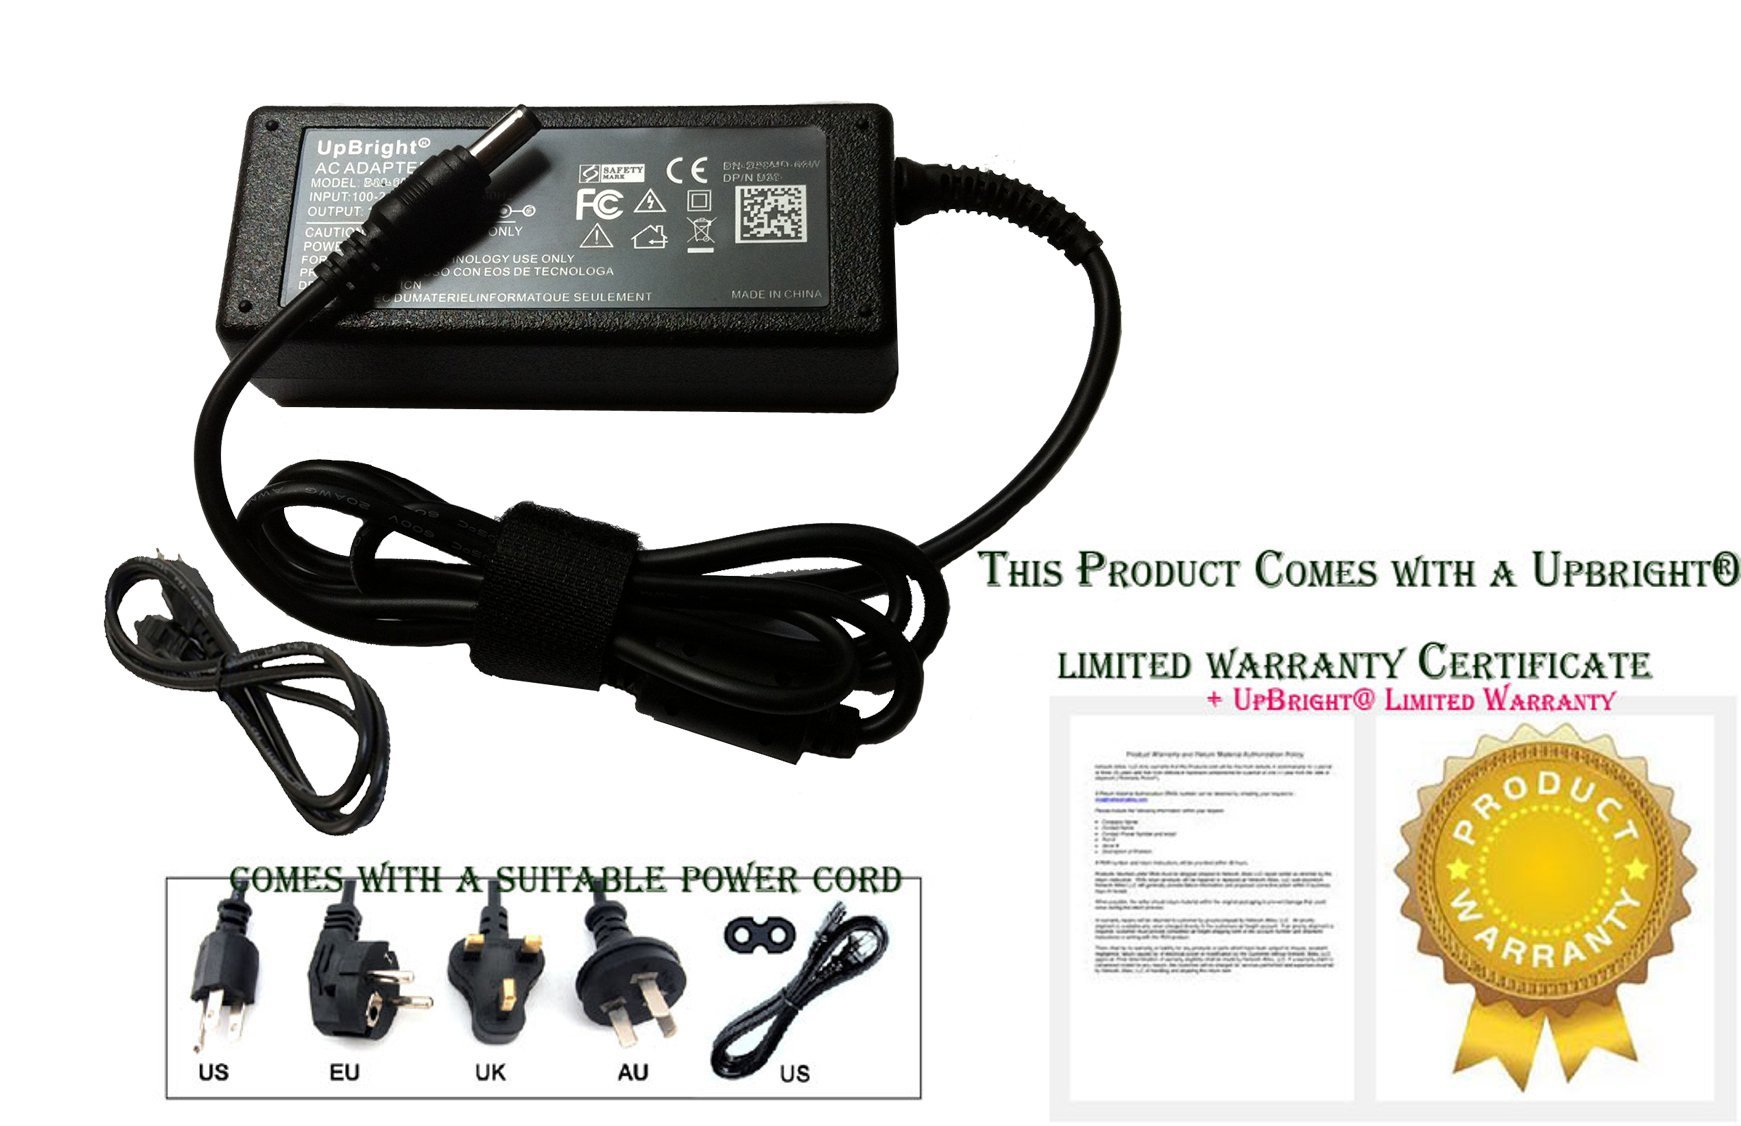 UpBright New 36V AC / DC Adapter For Kodak ESP C310 C315 C 310 C 315 All-In-One Inkjet AIO Printer 36VDC Power Supply Cord Cable PS Battery Charger Mains PSU